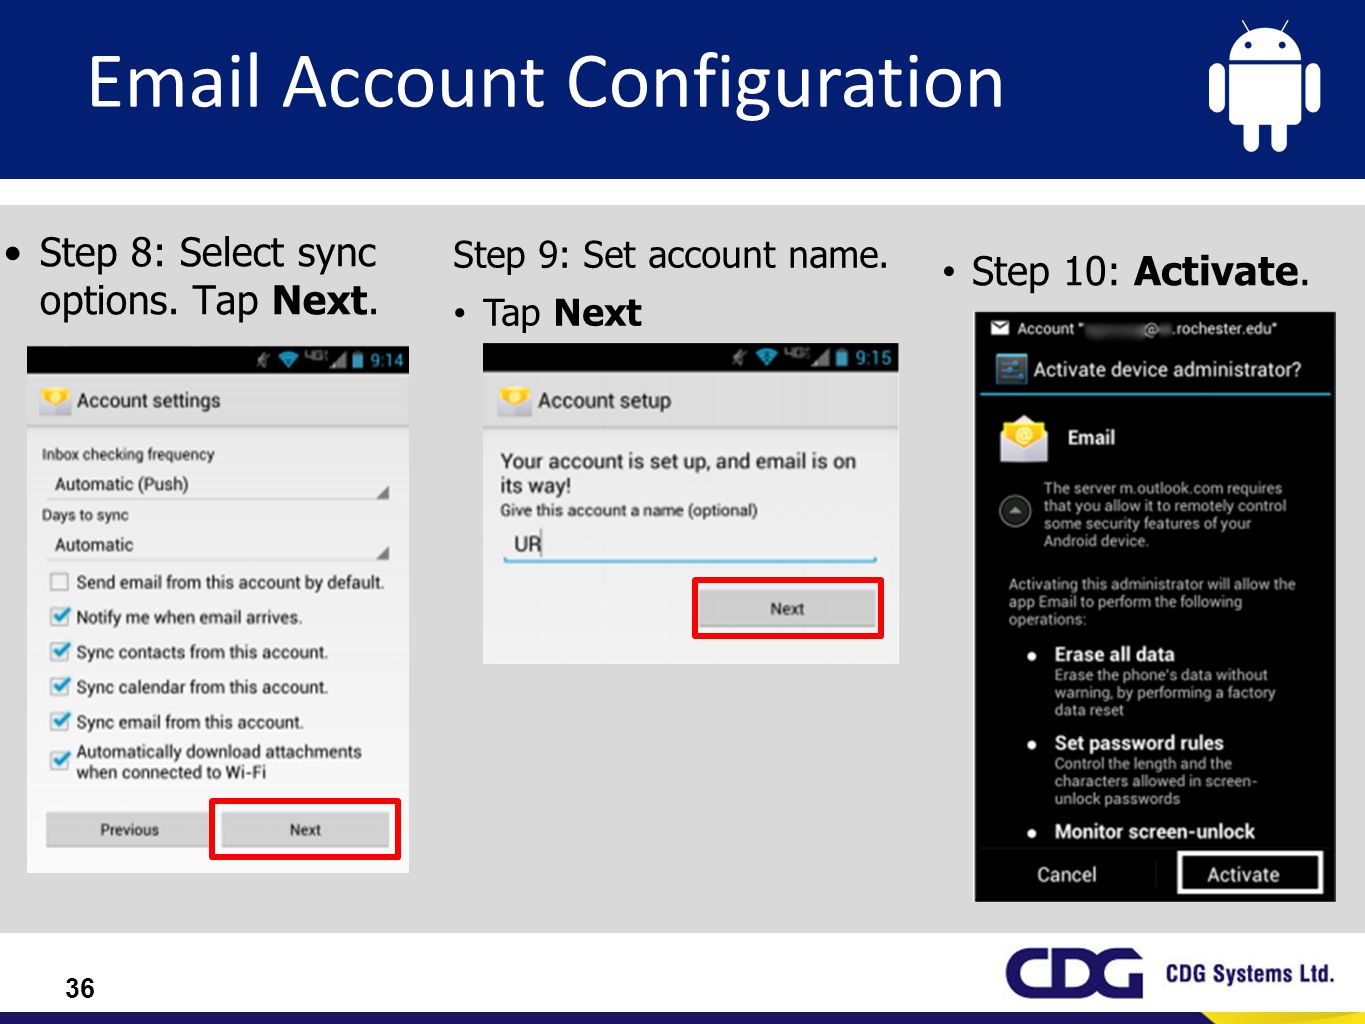 Email Account Configuration